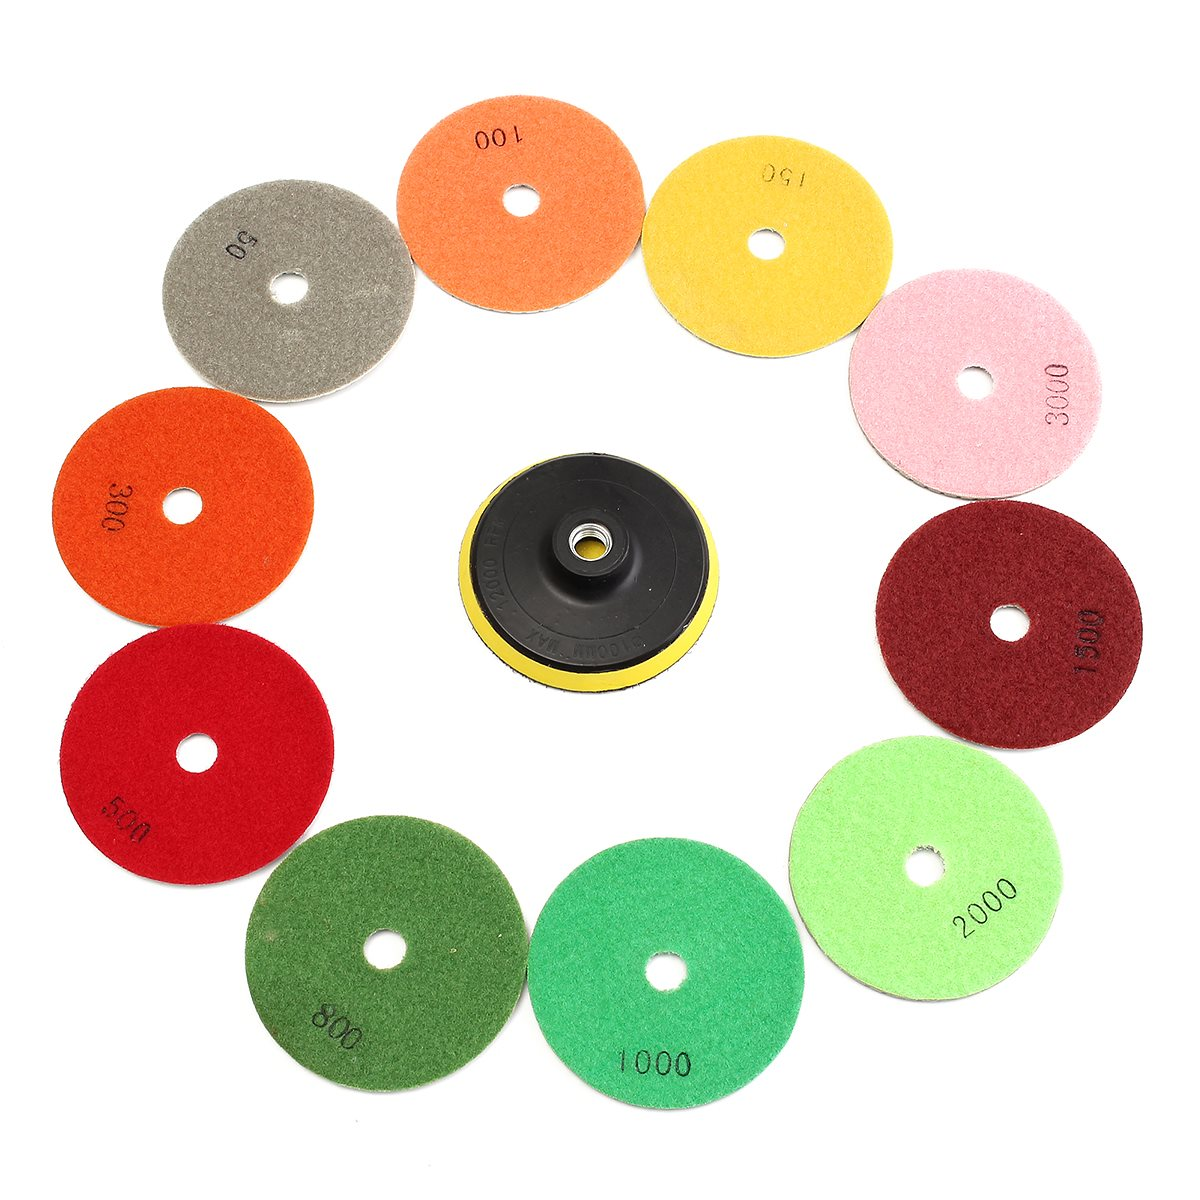 High Quality 11pcs/set 4 Diamond Polishing Pads Grinding Disc For Granite Marble Concrete Stone Tiles Tool Best Price wood working tool kit 12mm shaft diamond grinding head for marble granite stone and tiles glass at good price export quality